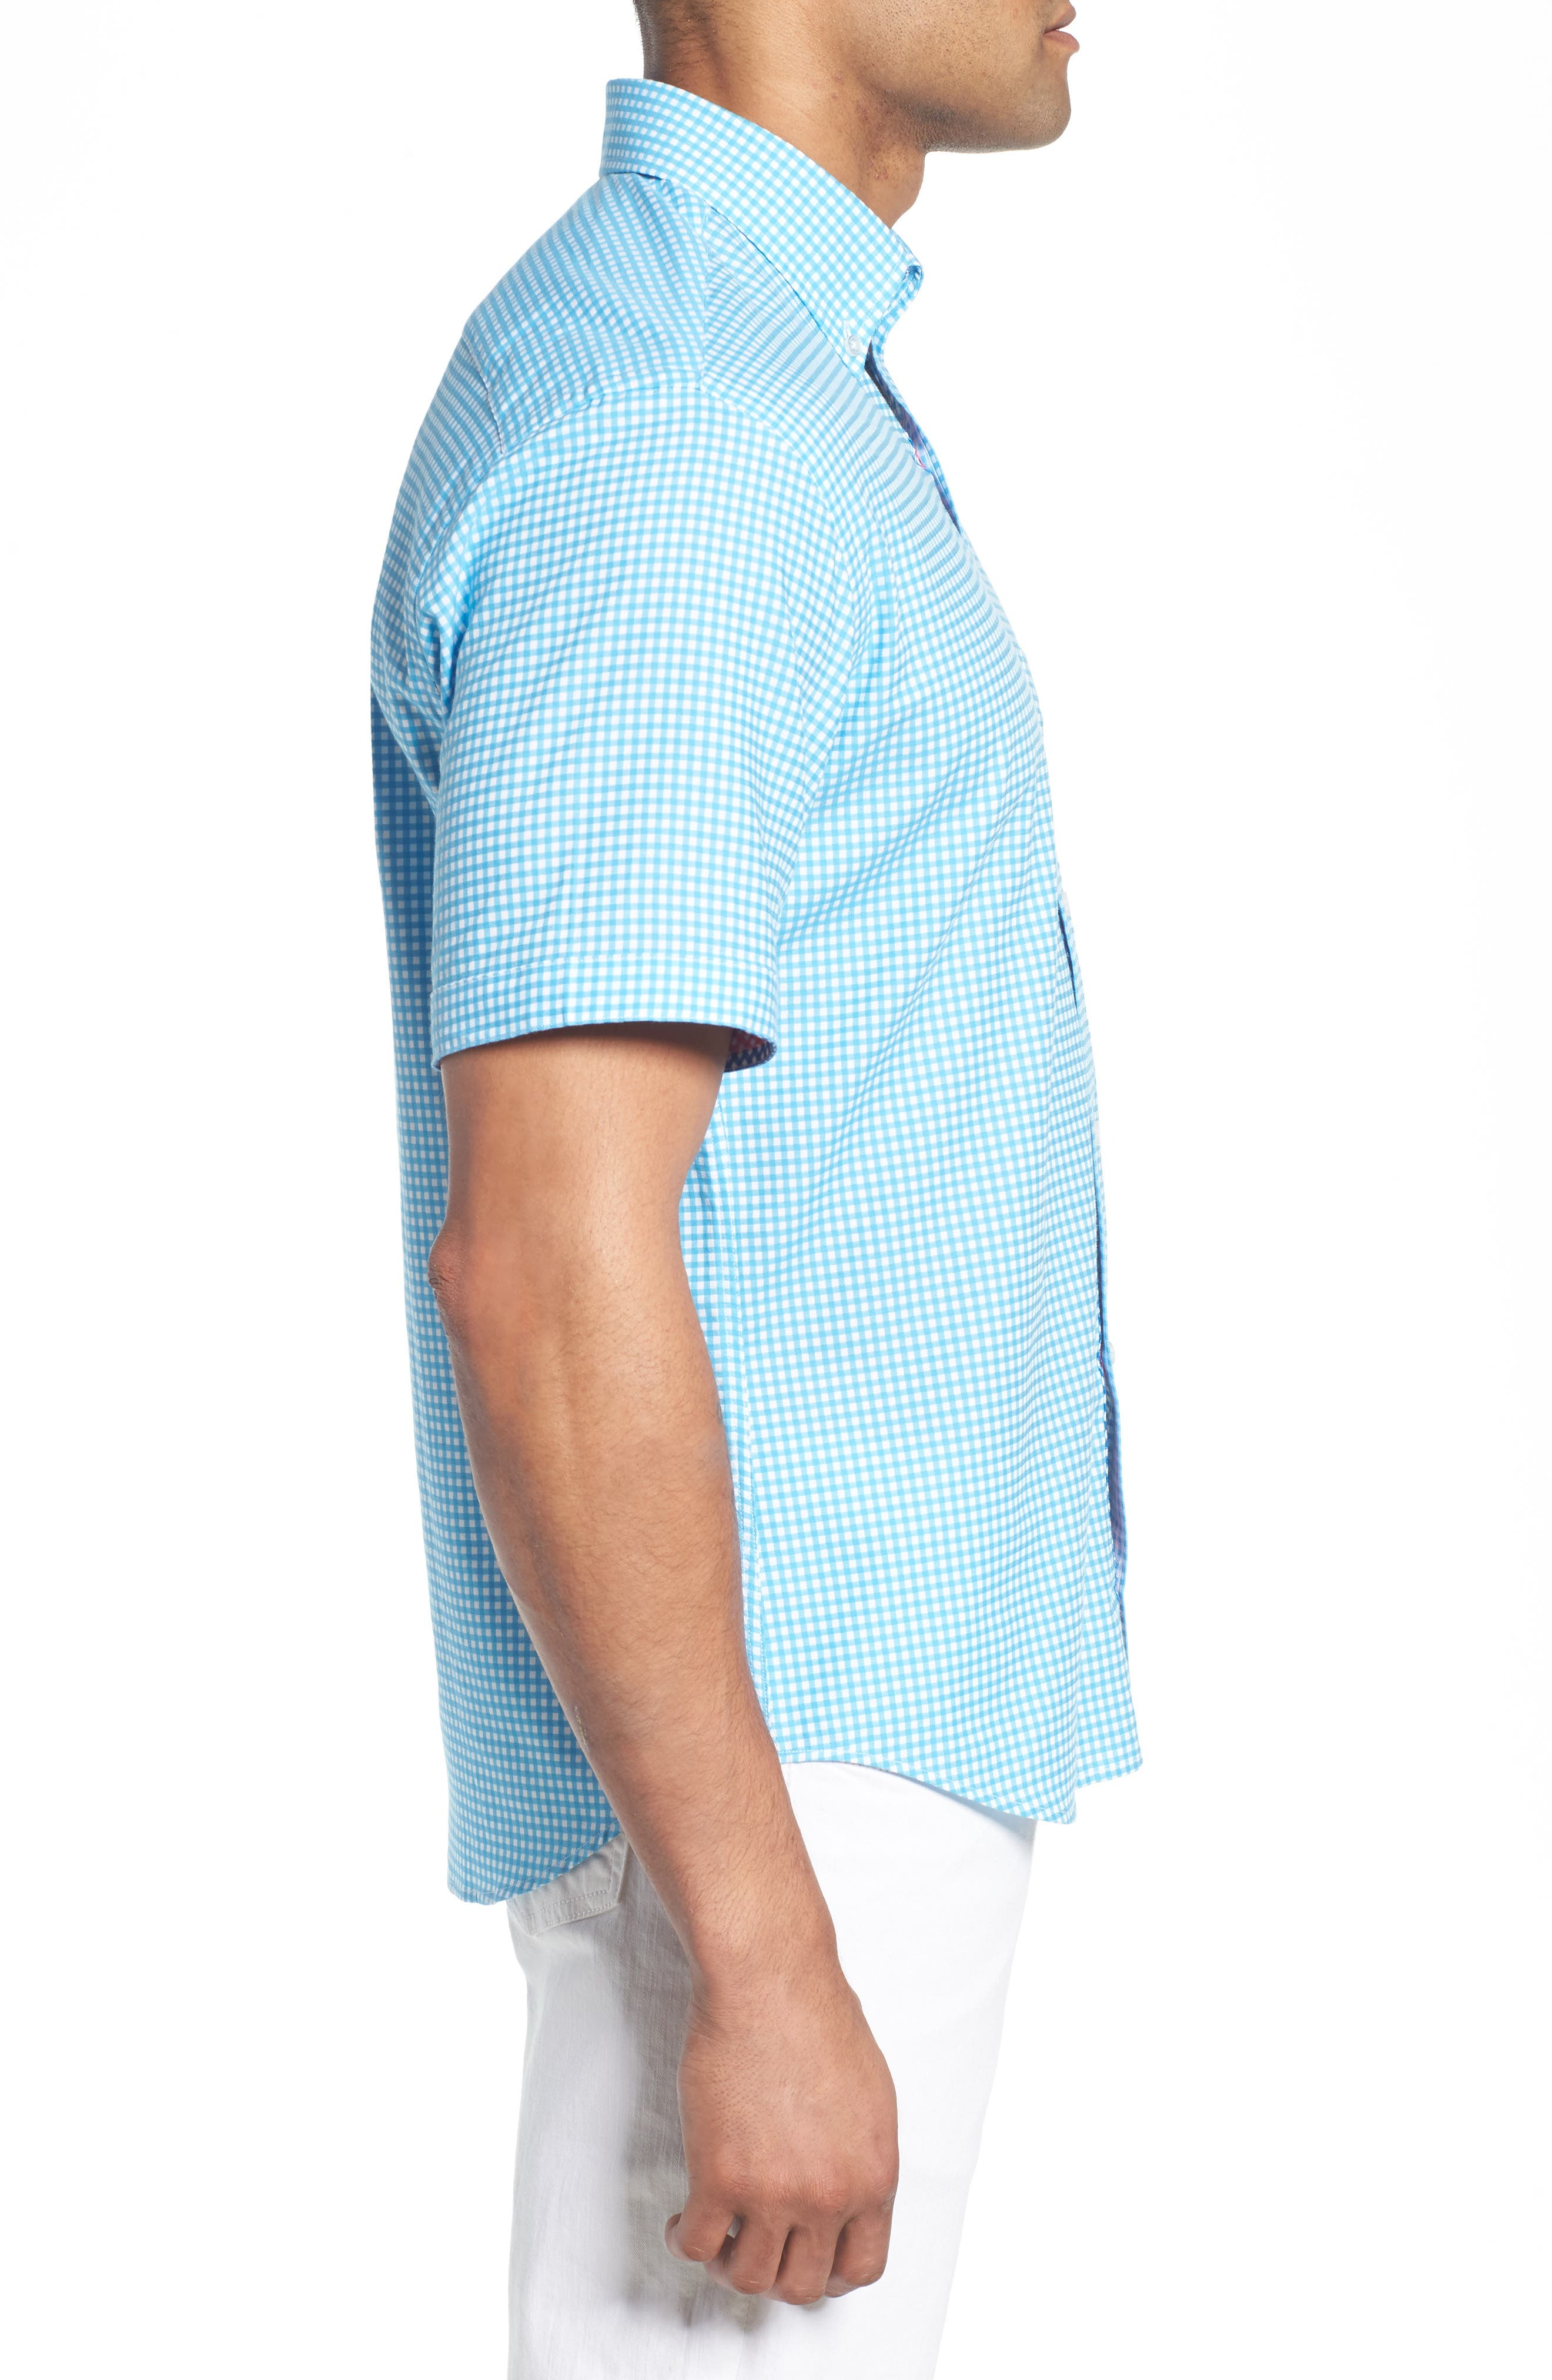 Aden Regular Fit Sport Shirt,                             Alternate thumbnail 3, color,                             465